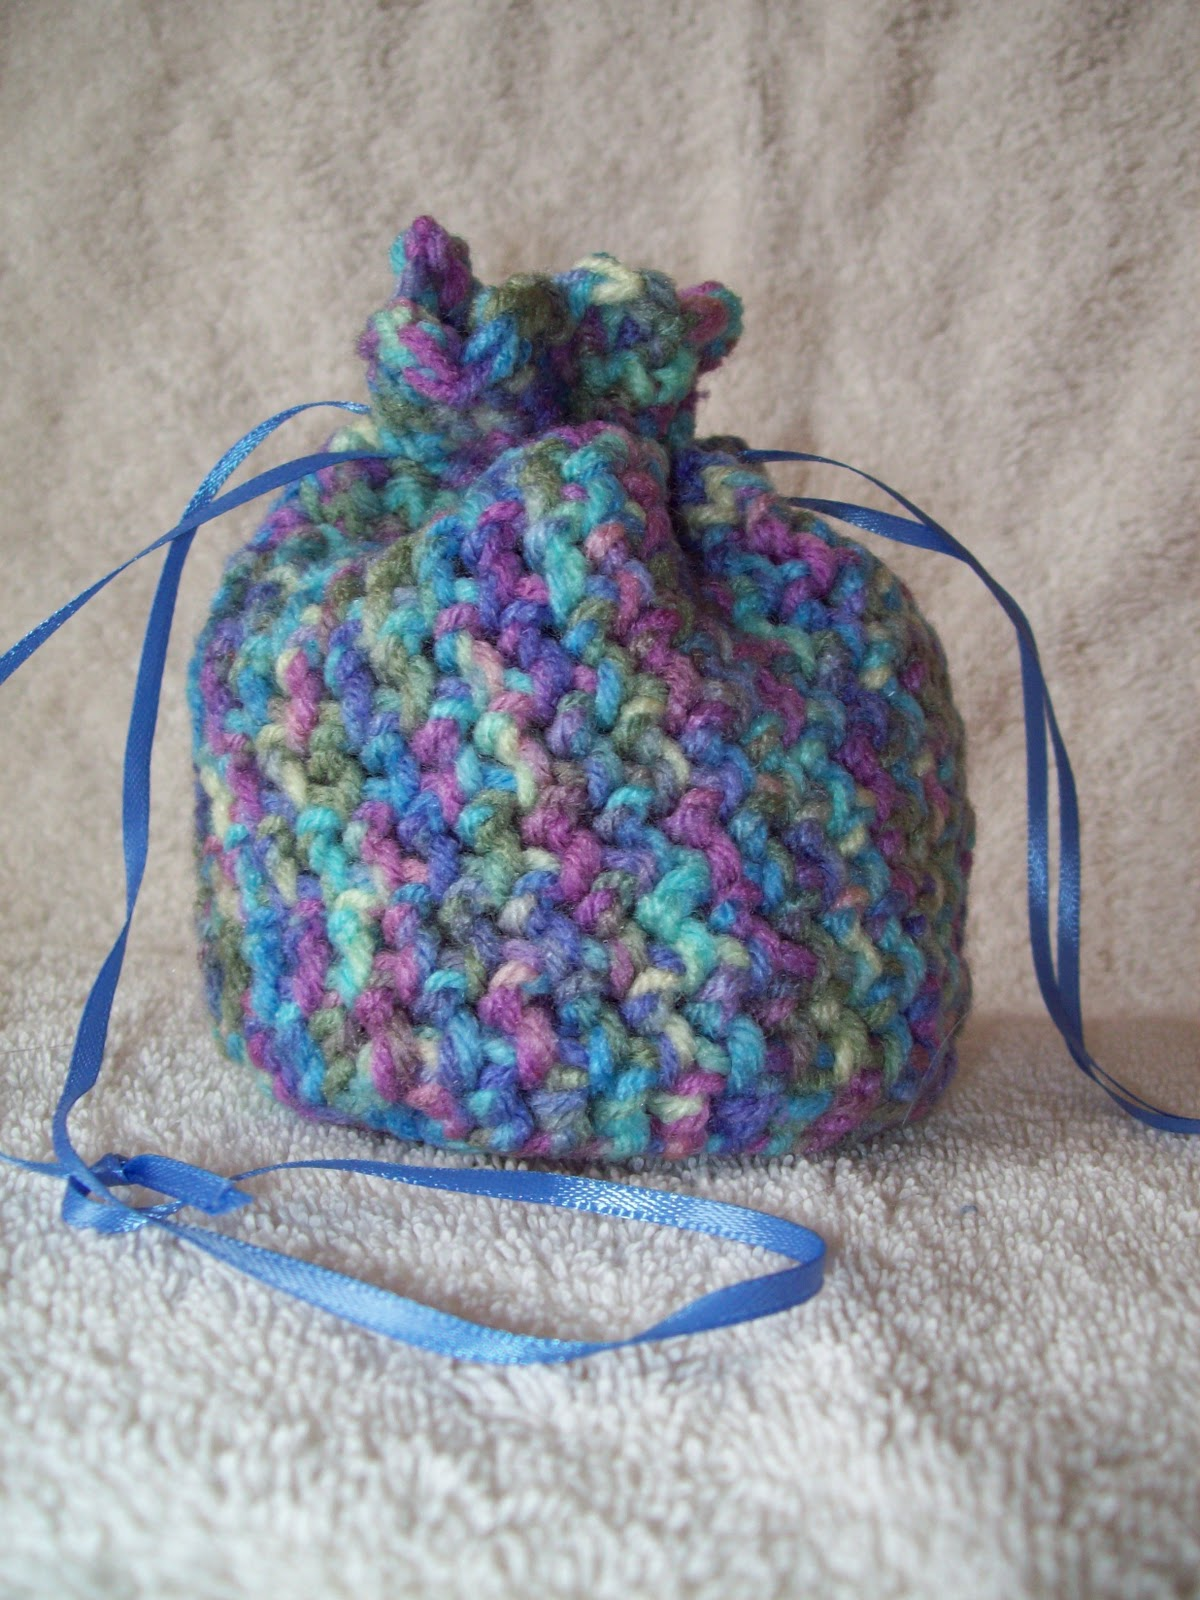 Stitchin\' the Night Away: Crochet Mini Drawstring Bag